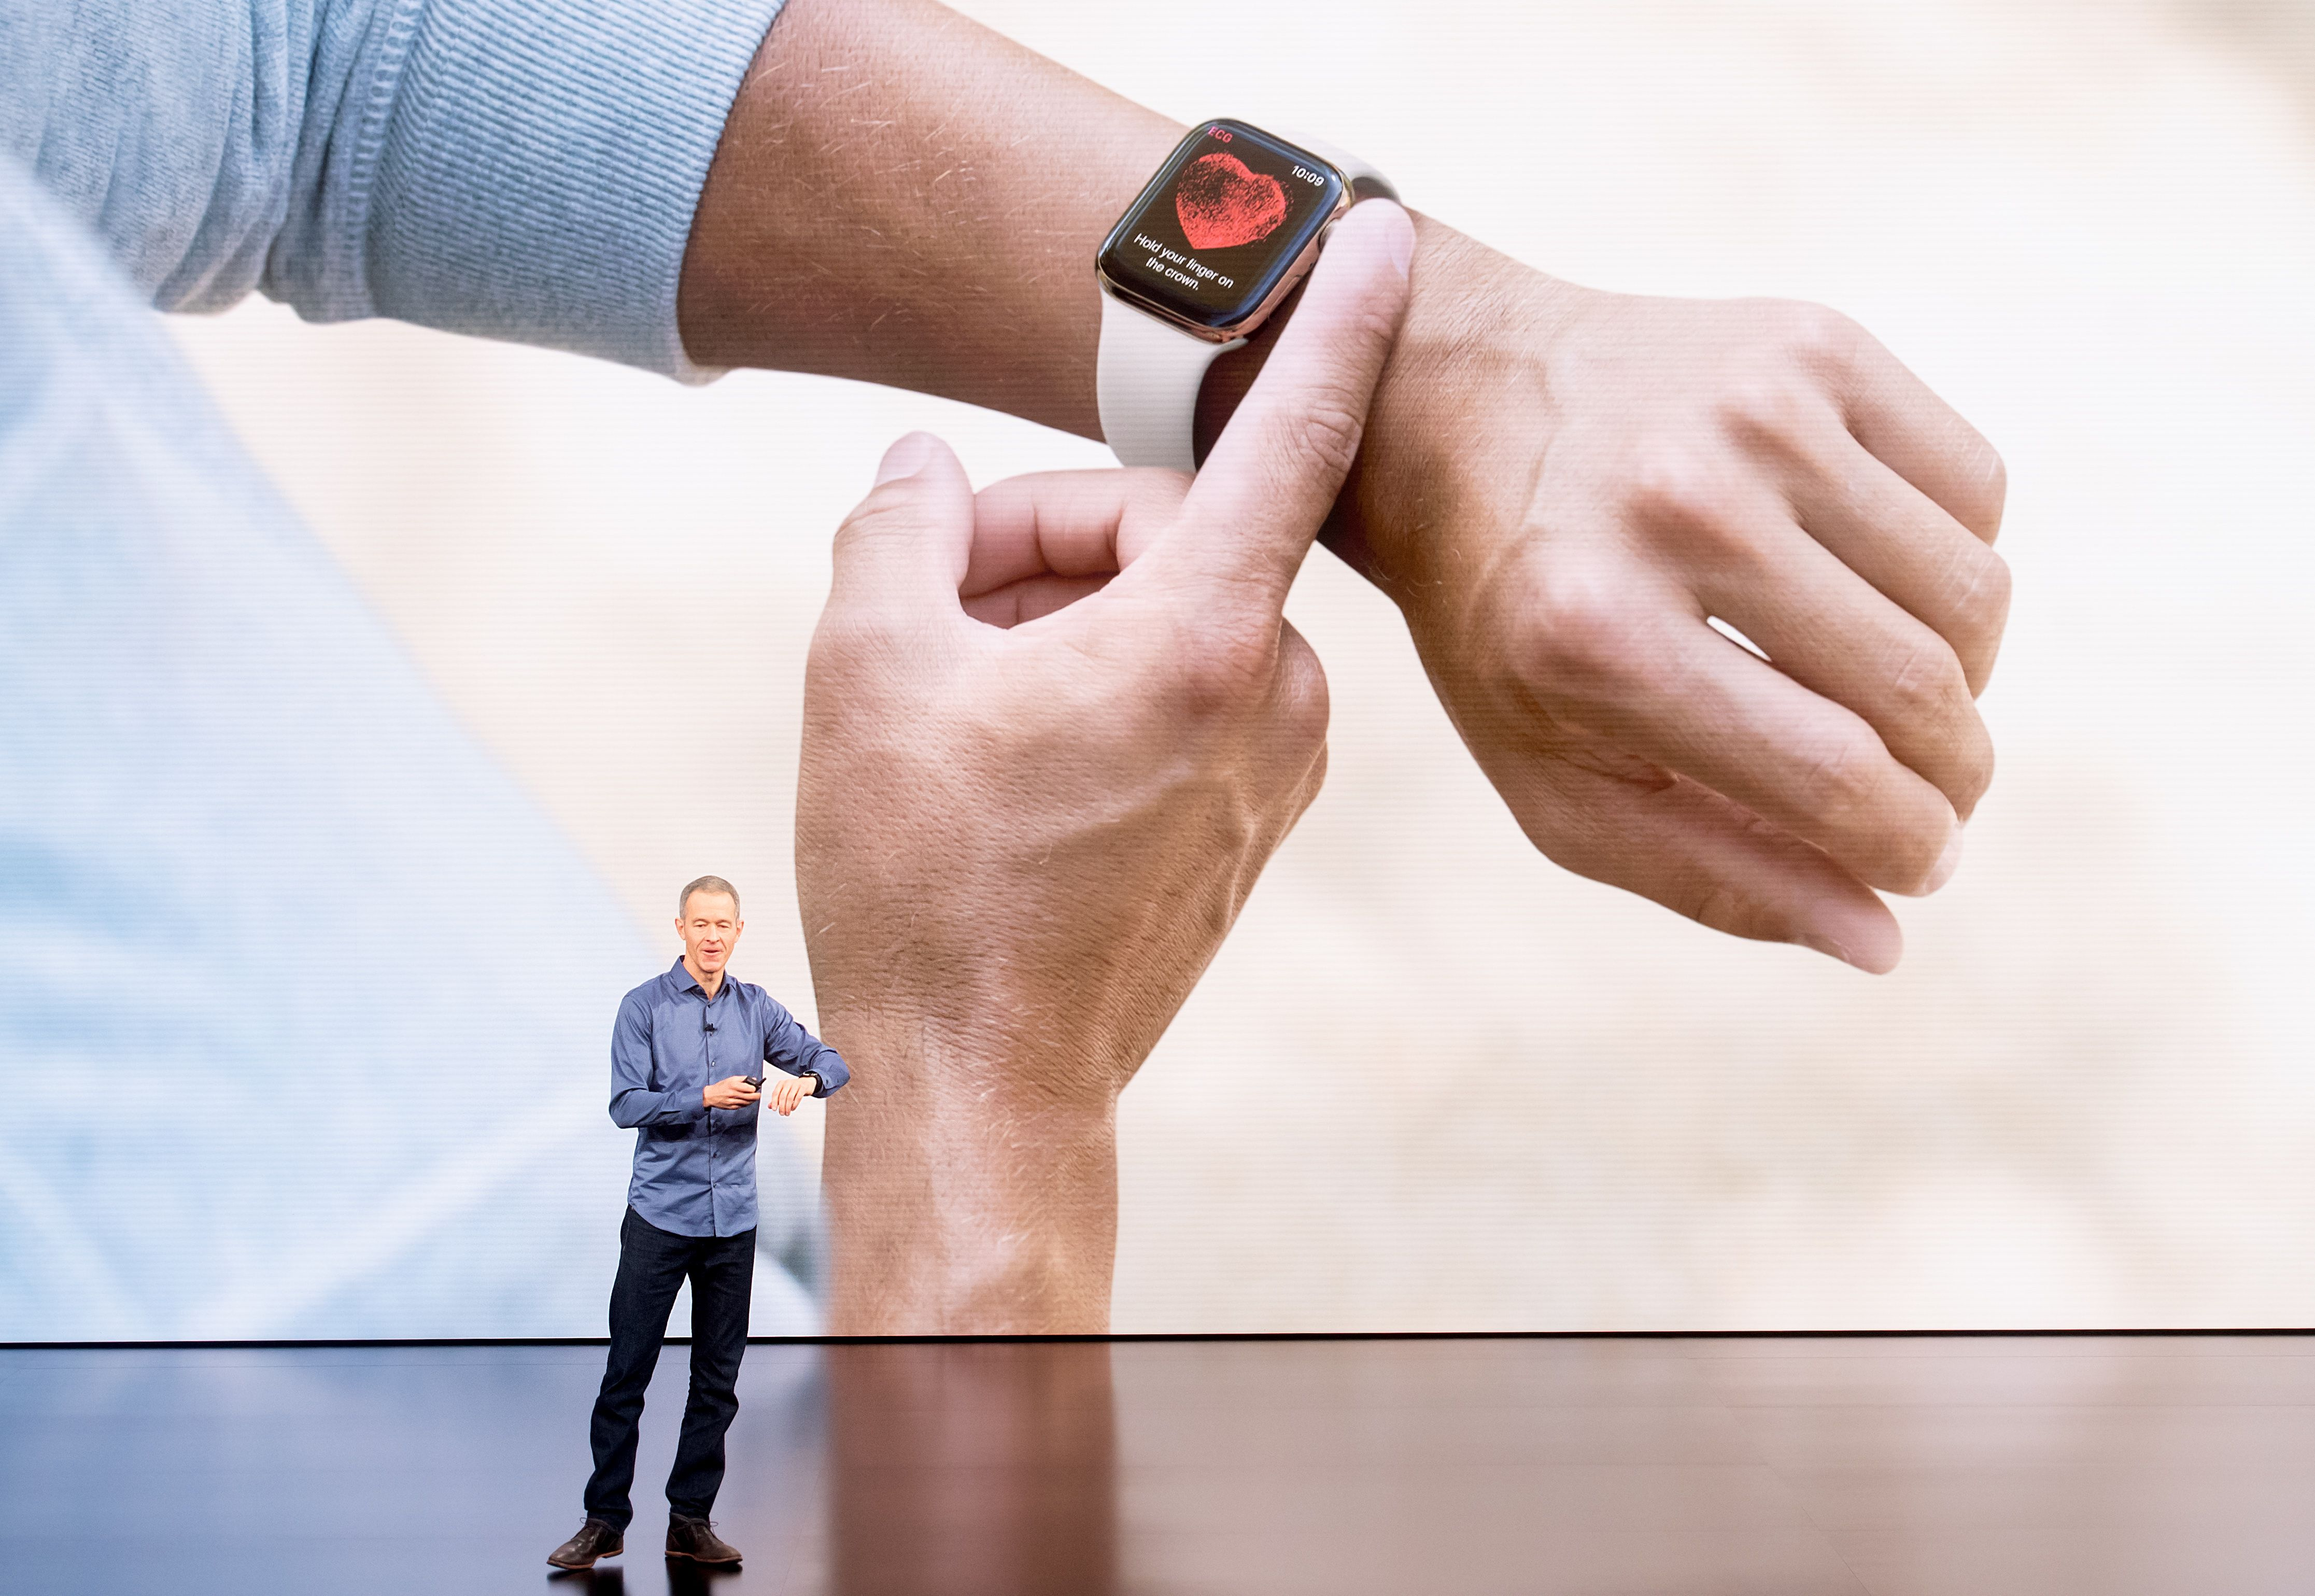 The New Apple Watch Heart Monitoring Only Works in the U.S.